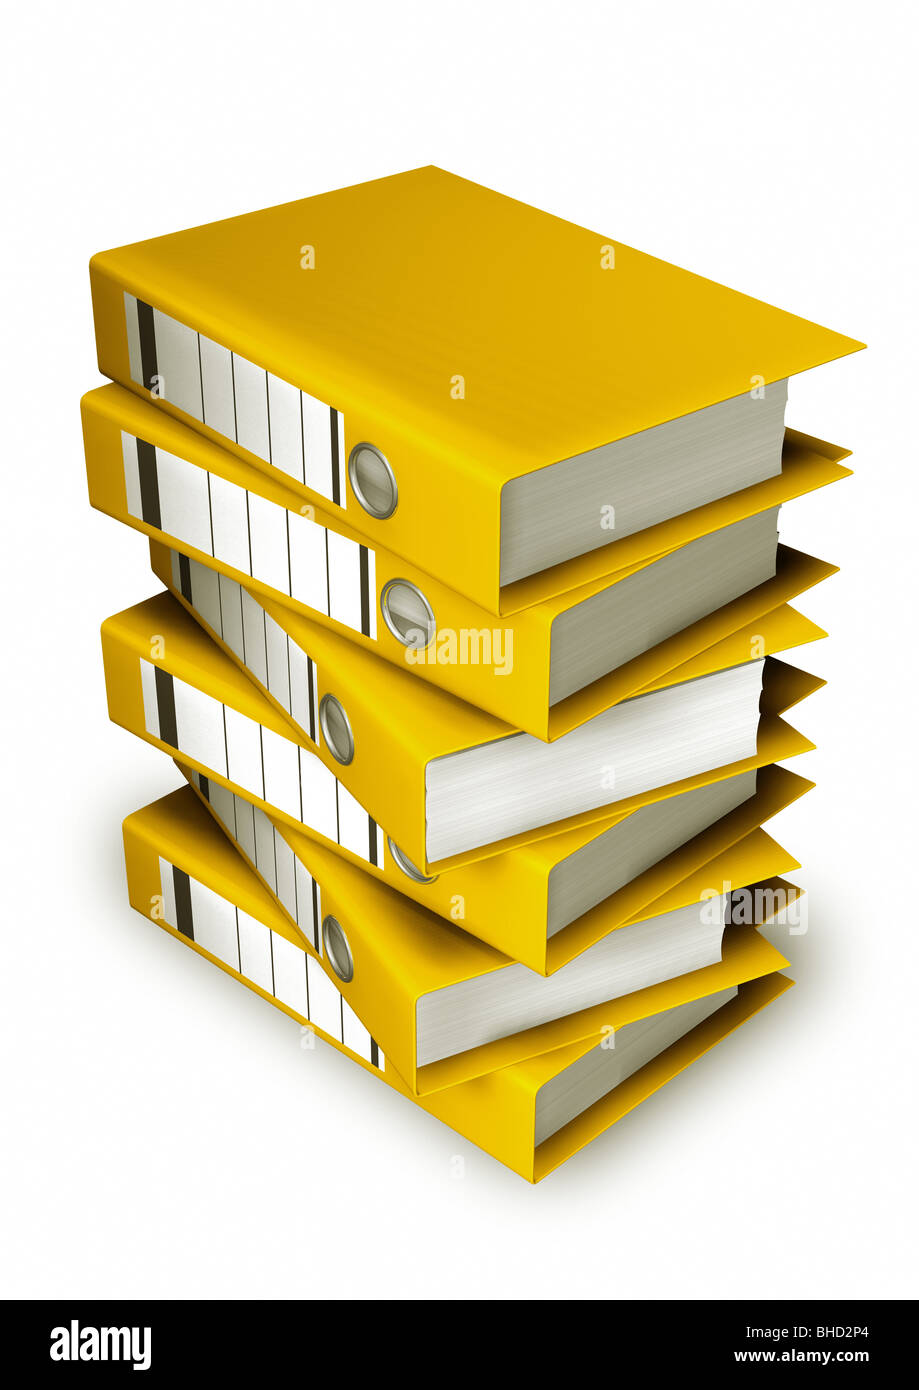 Stacked Yellow Lever Arch Files on White Background - Stock Image